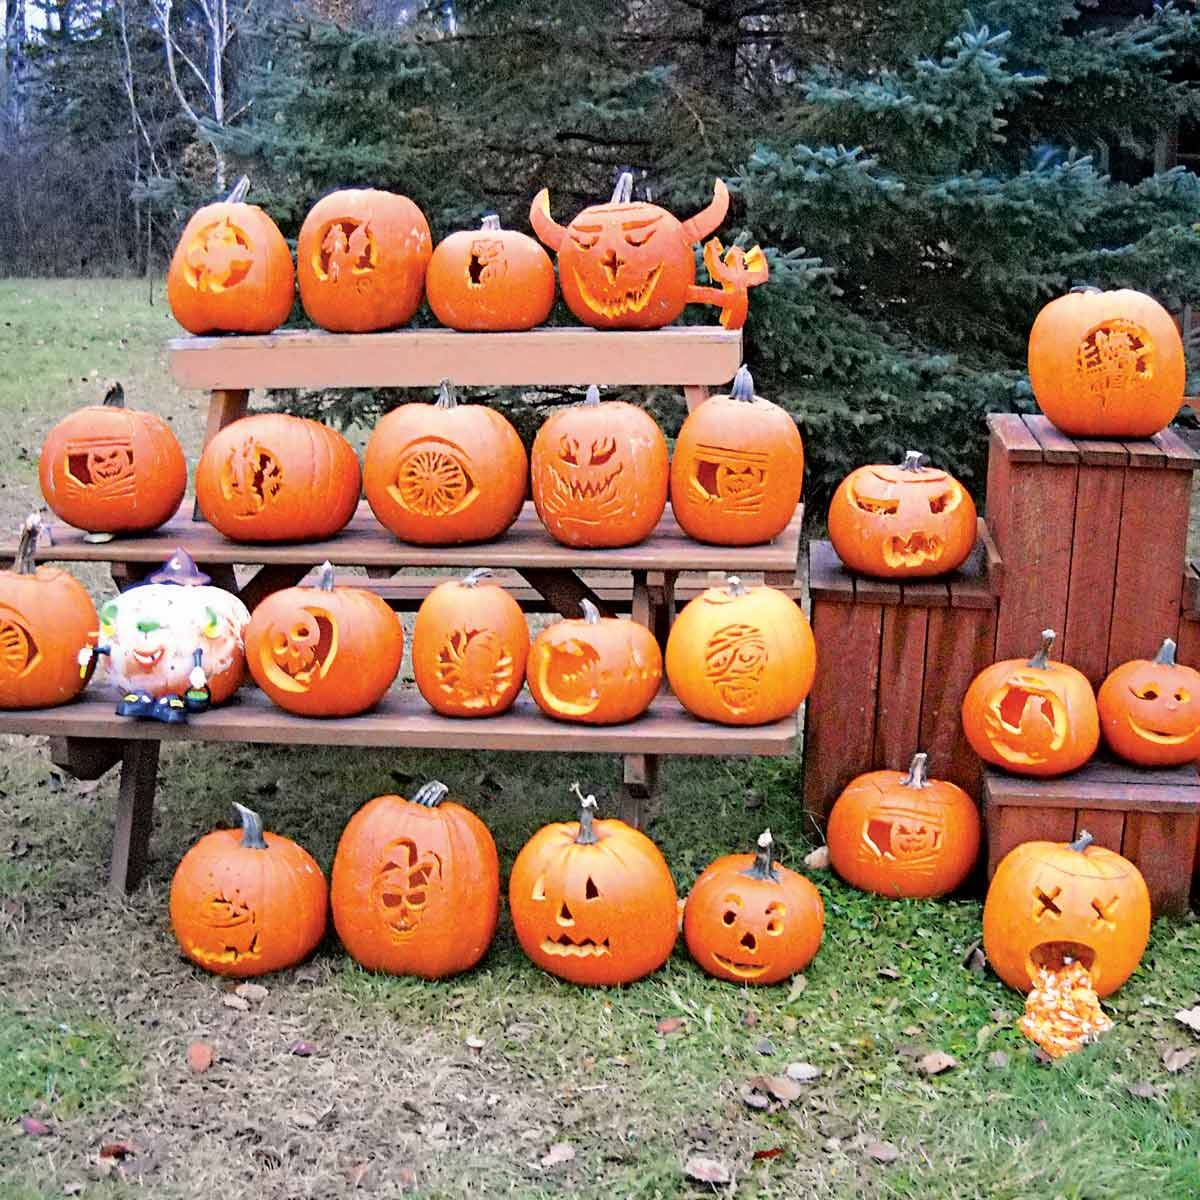 Host a Pumpkin Carving Party